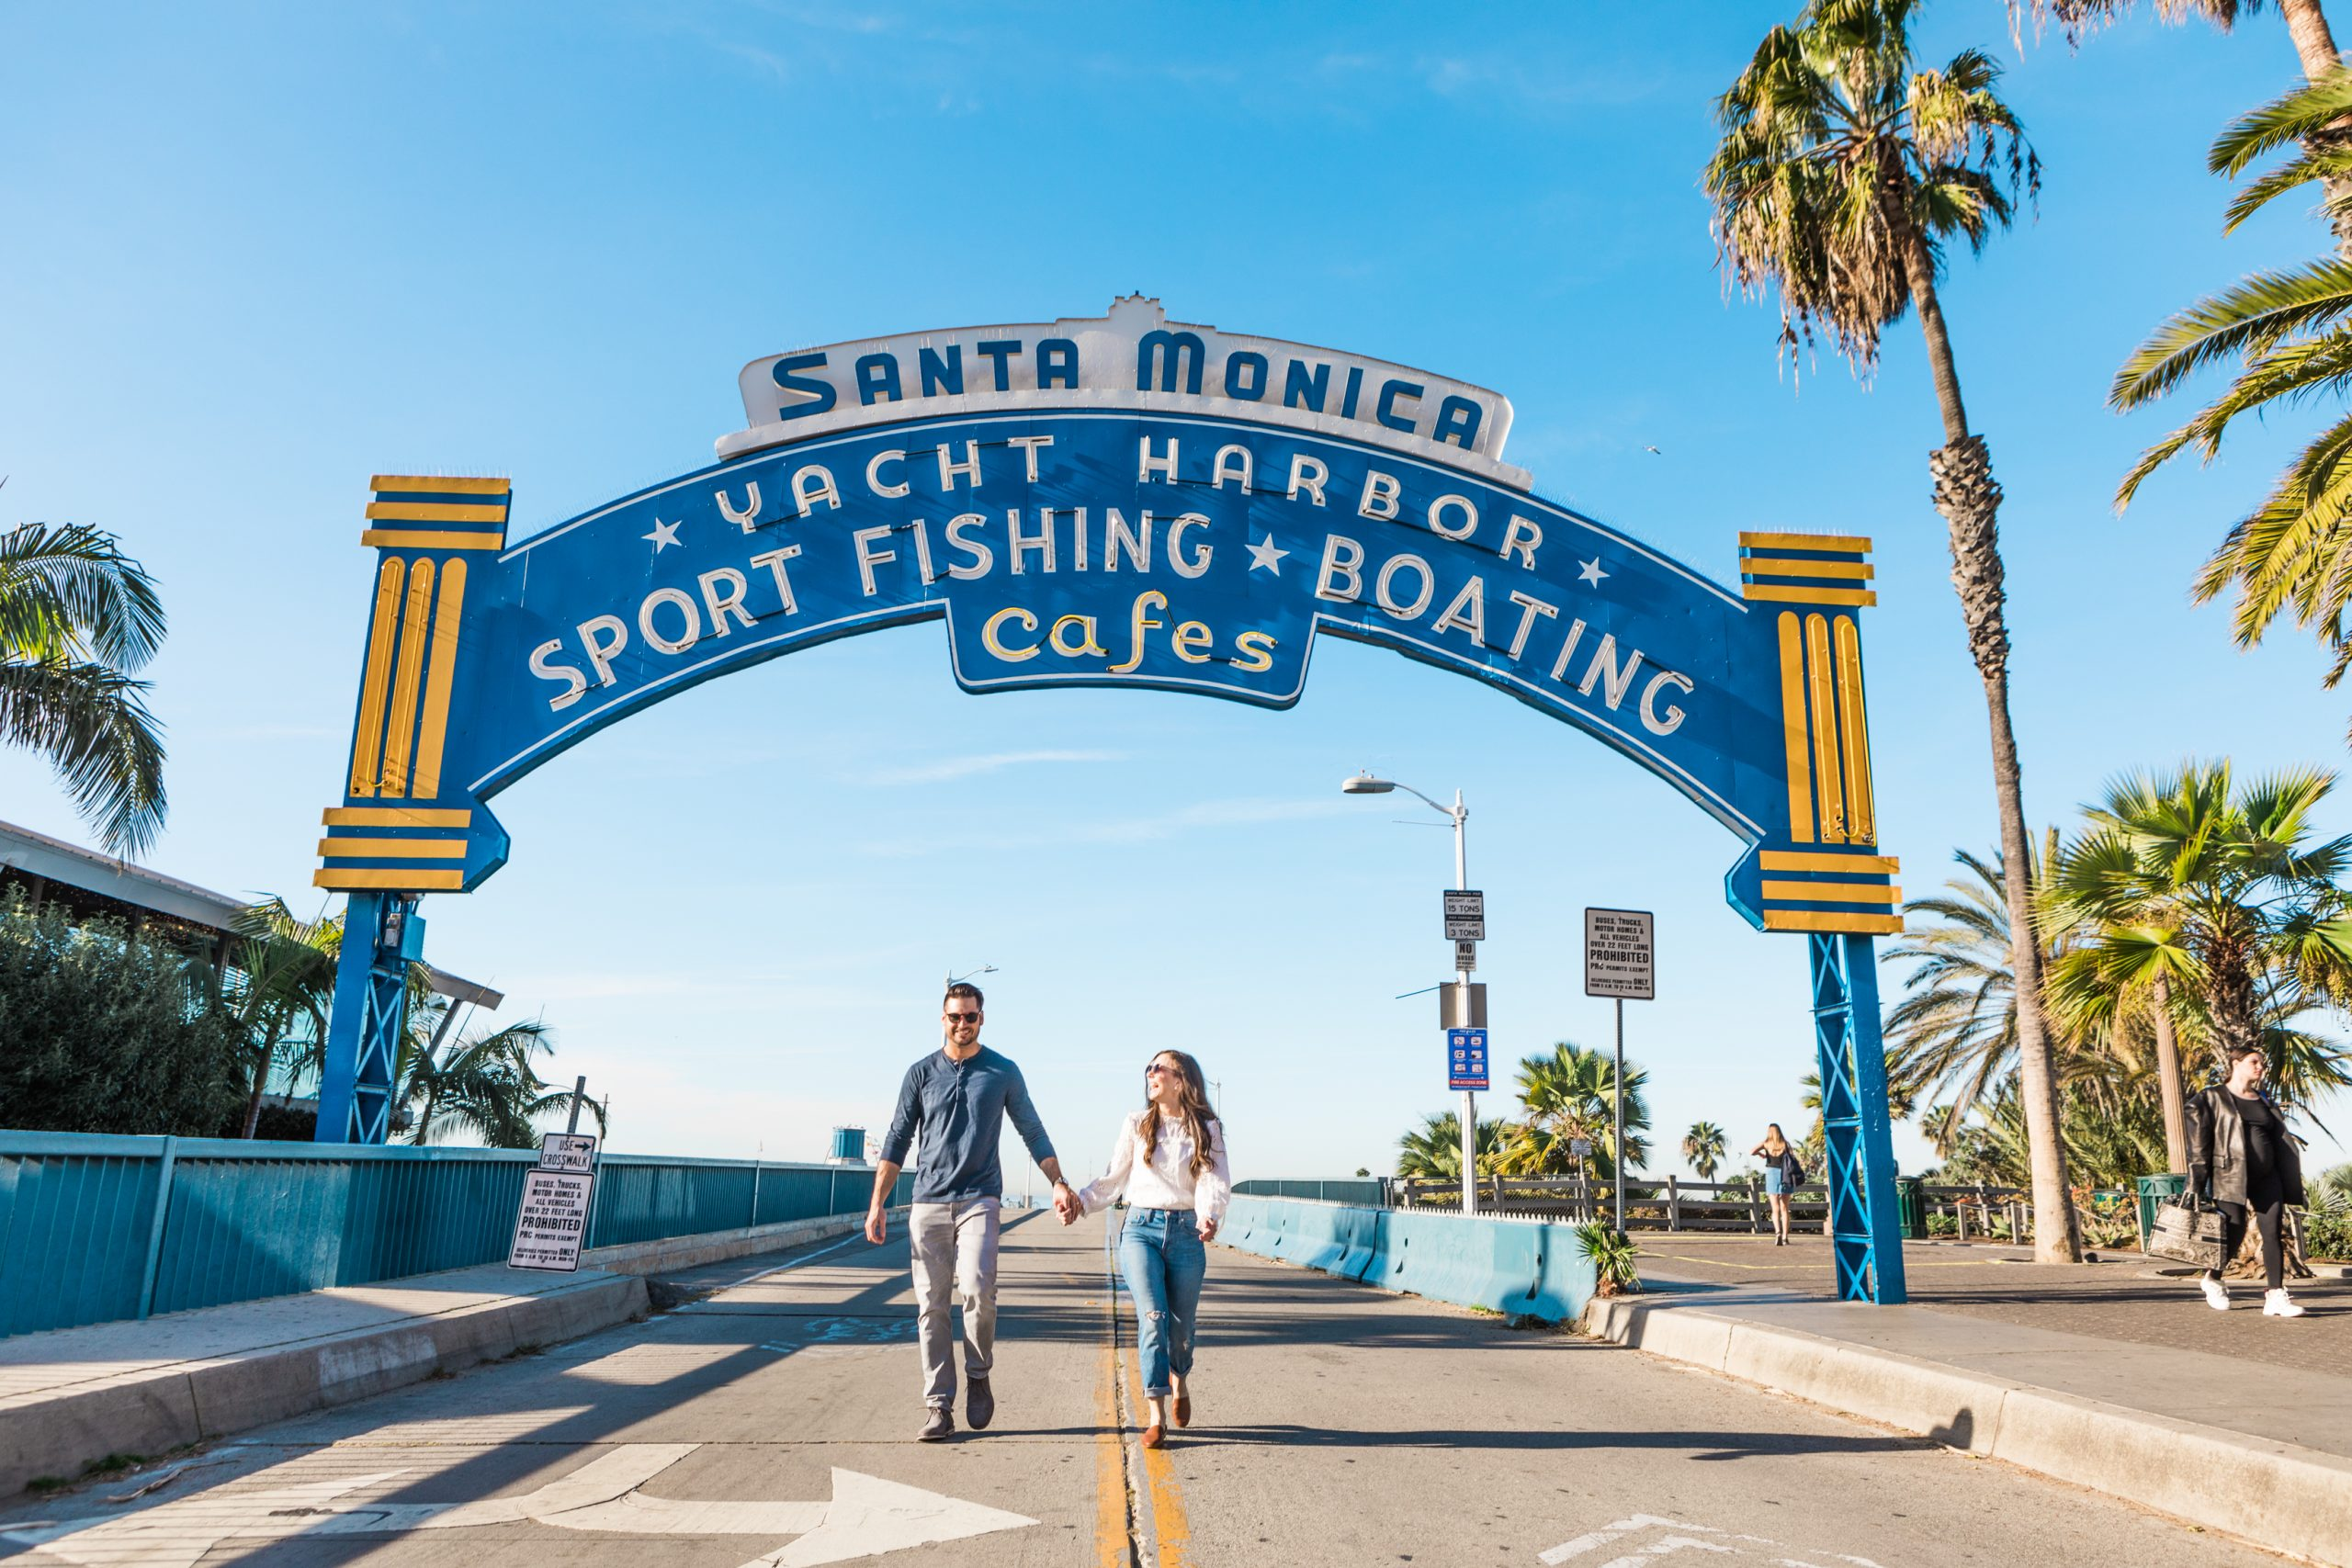 couple holding hands walking under the Santa Monica Yacht Harbor Sign